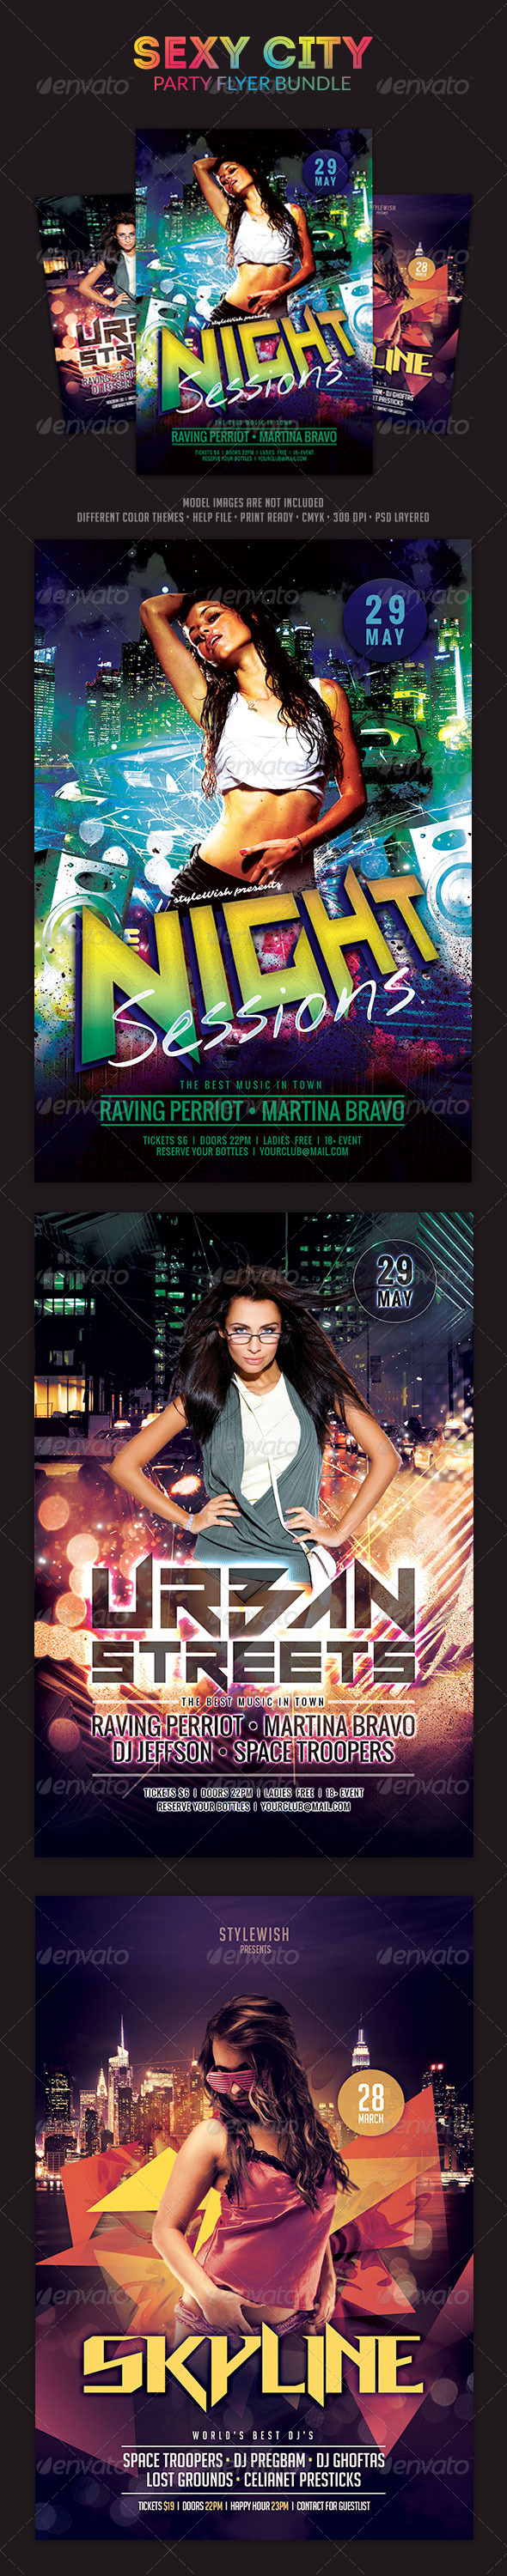 Sexy City Party Flyer Bundle - Clubs & Parties Events